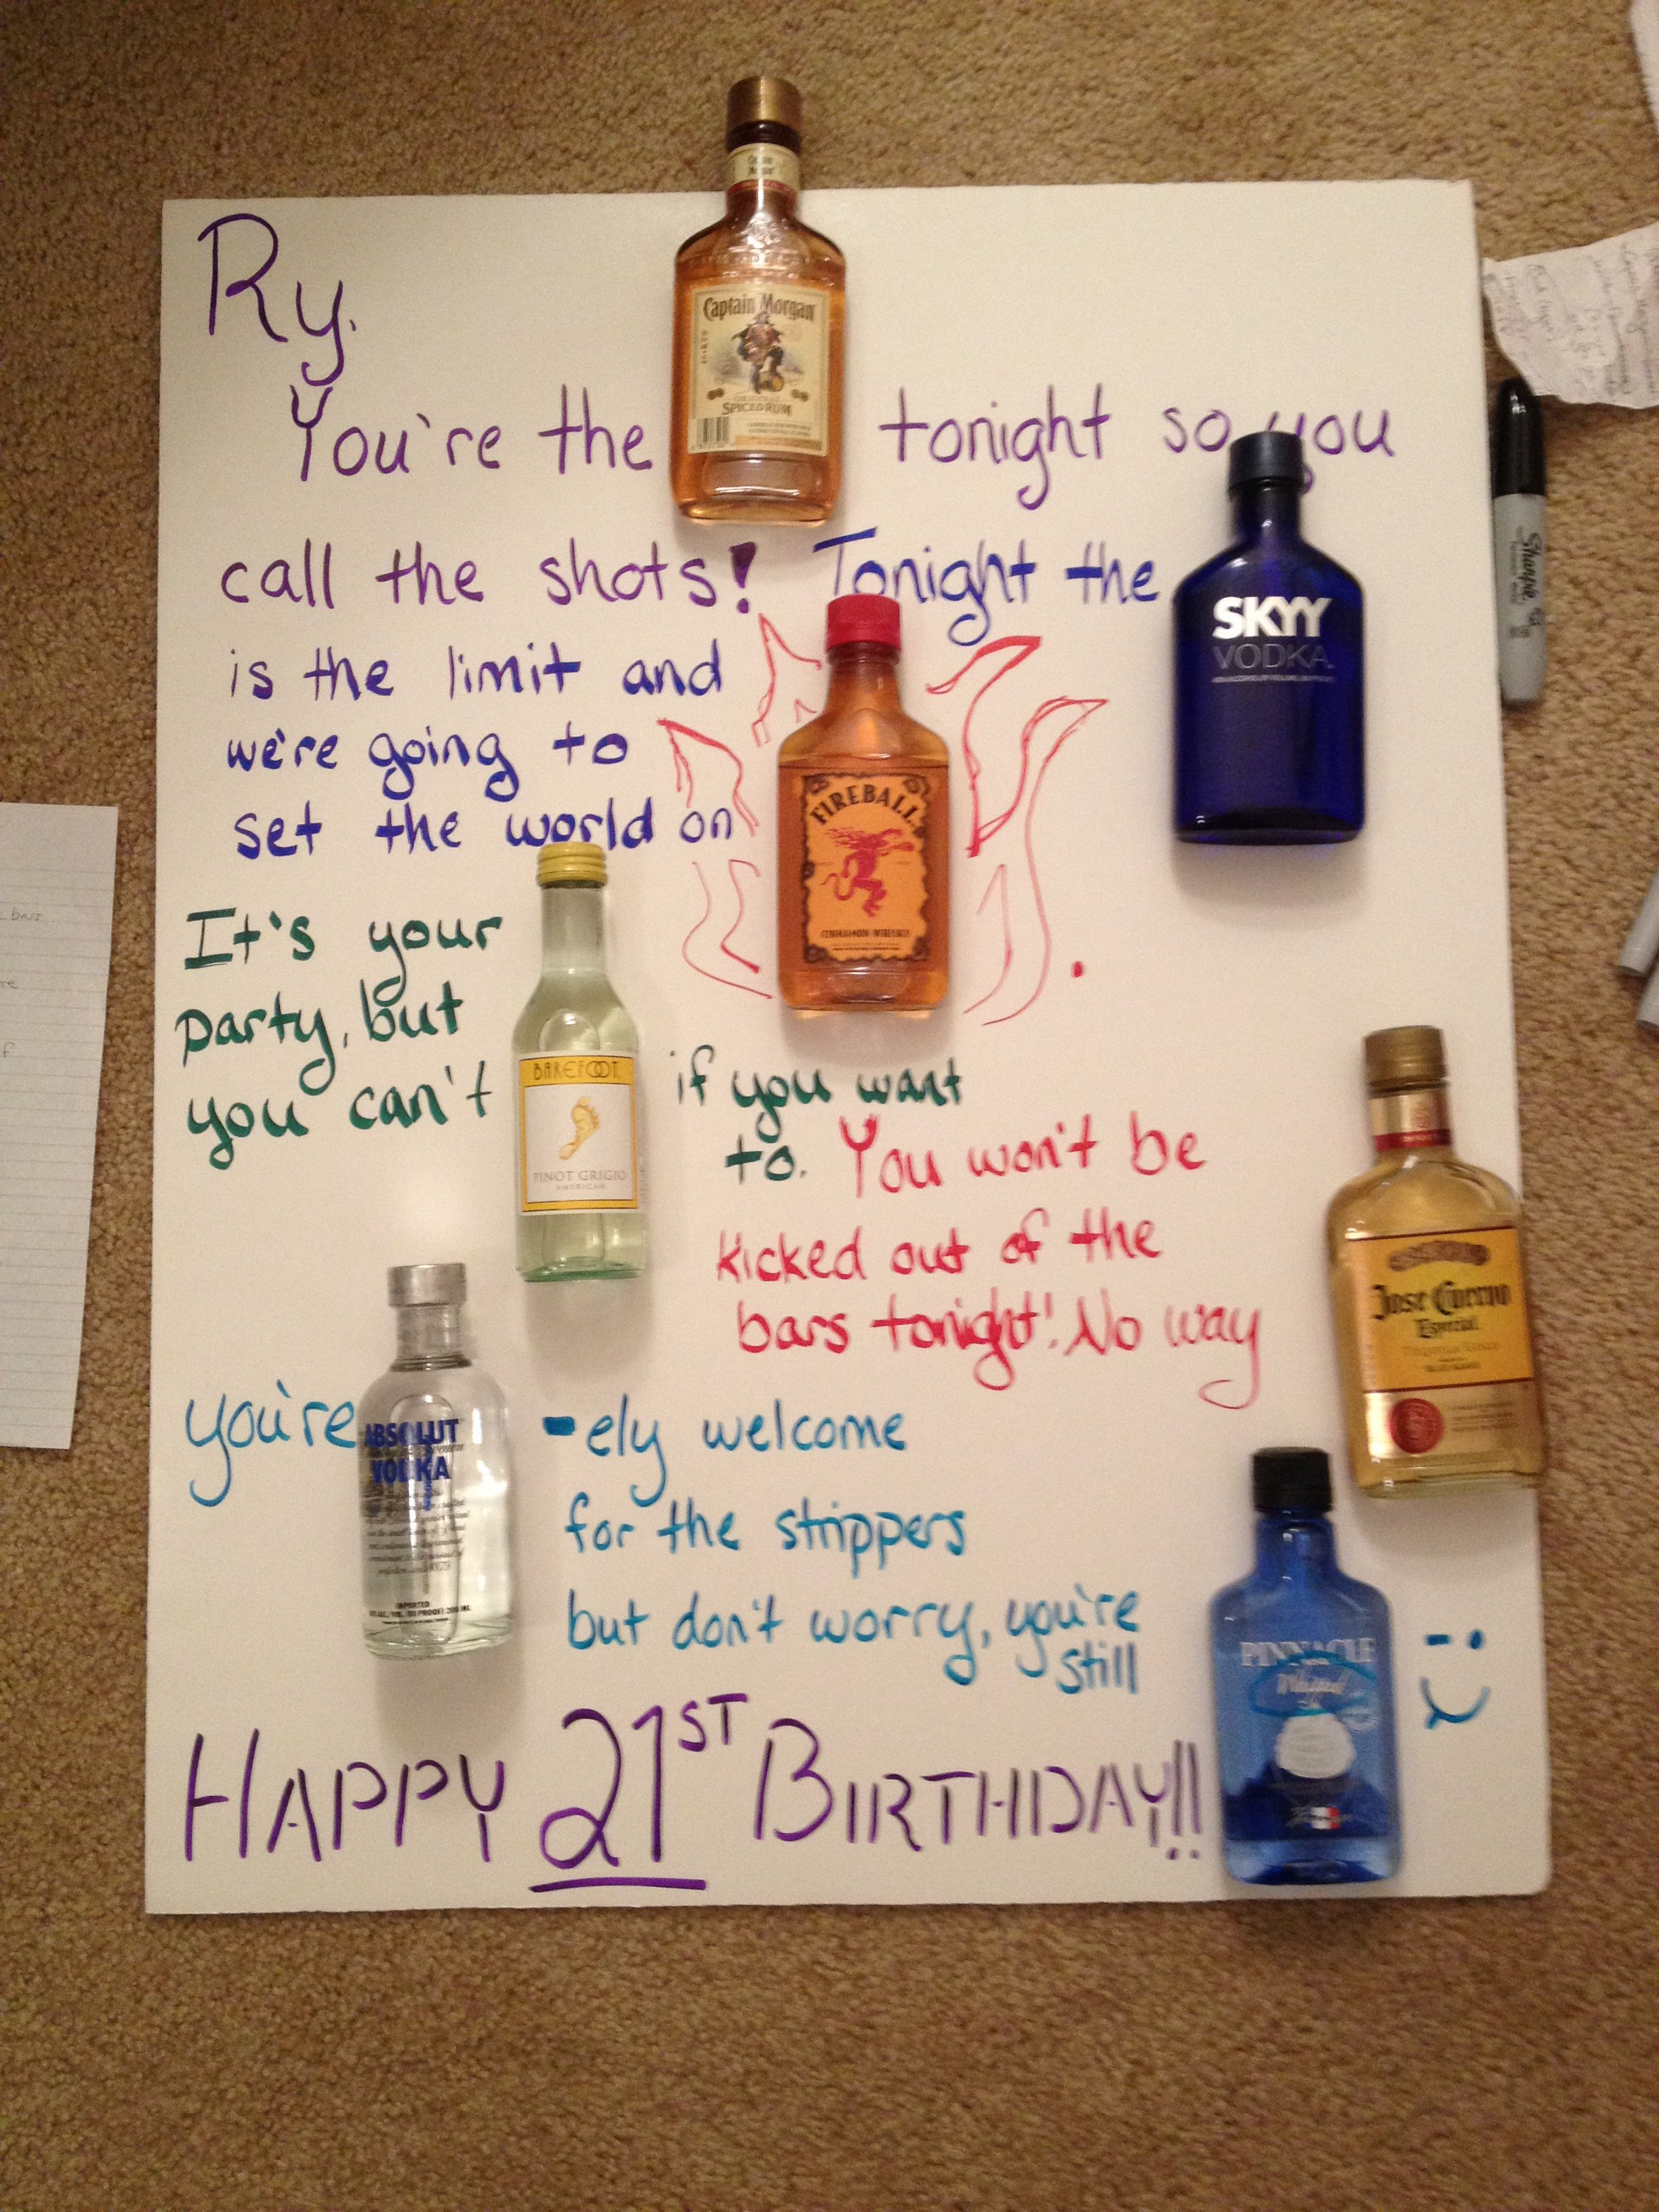 21st Birthday Poster Creative Birthday Gifts 21st Birthday Boy Birthday Poster